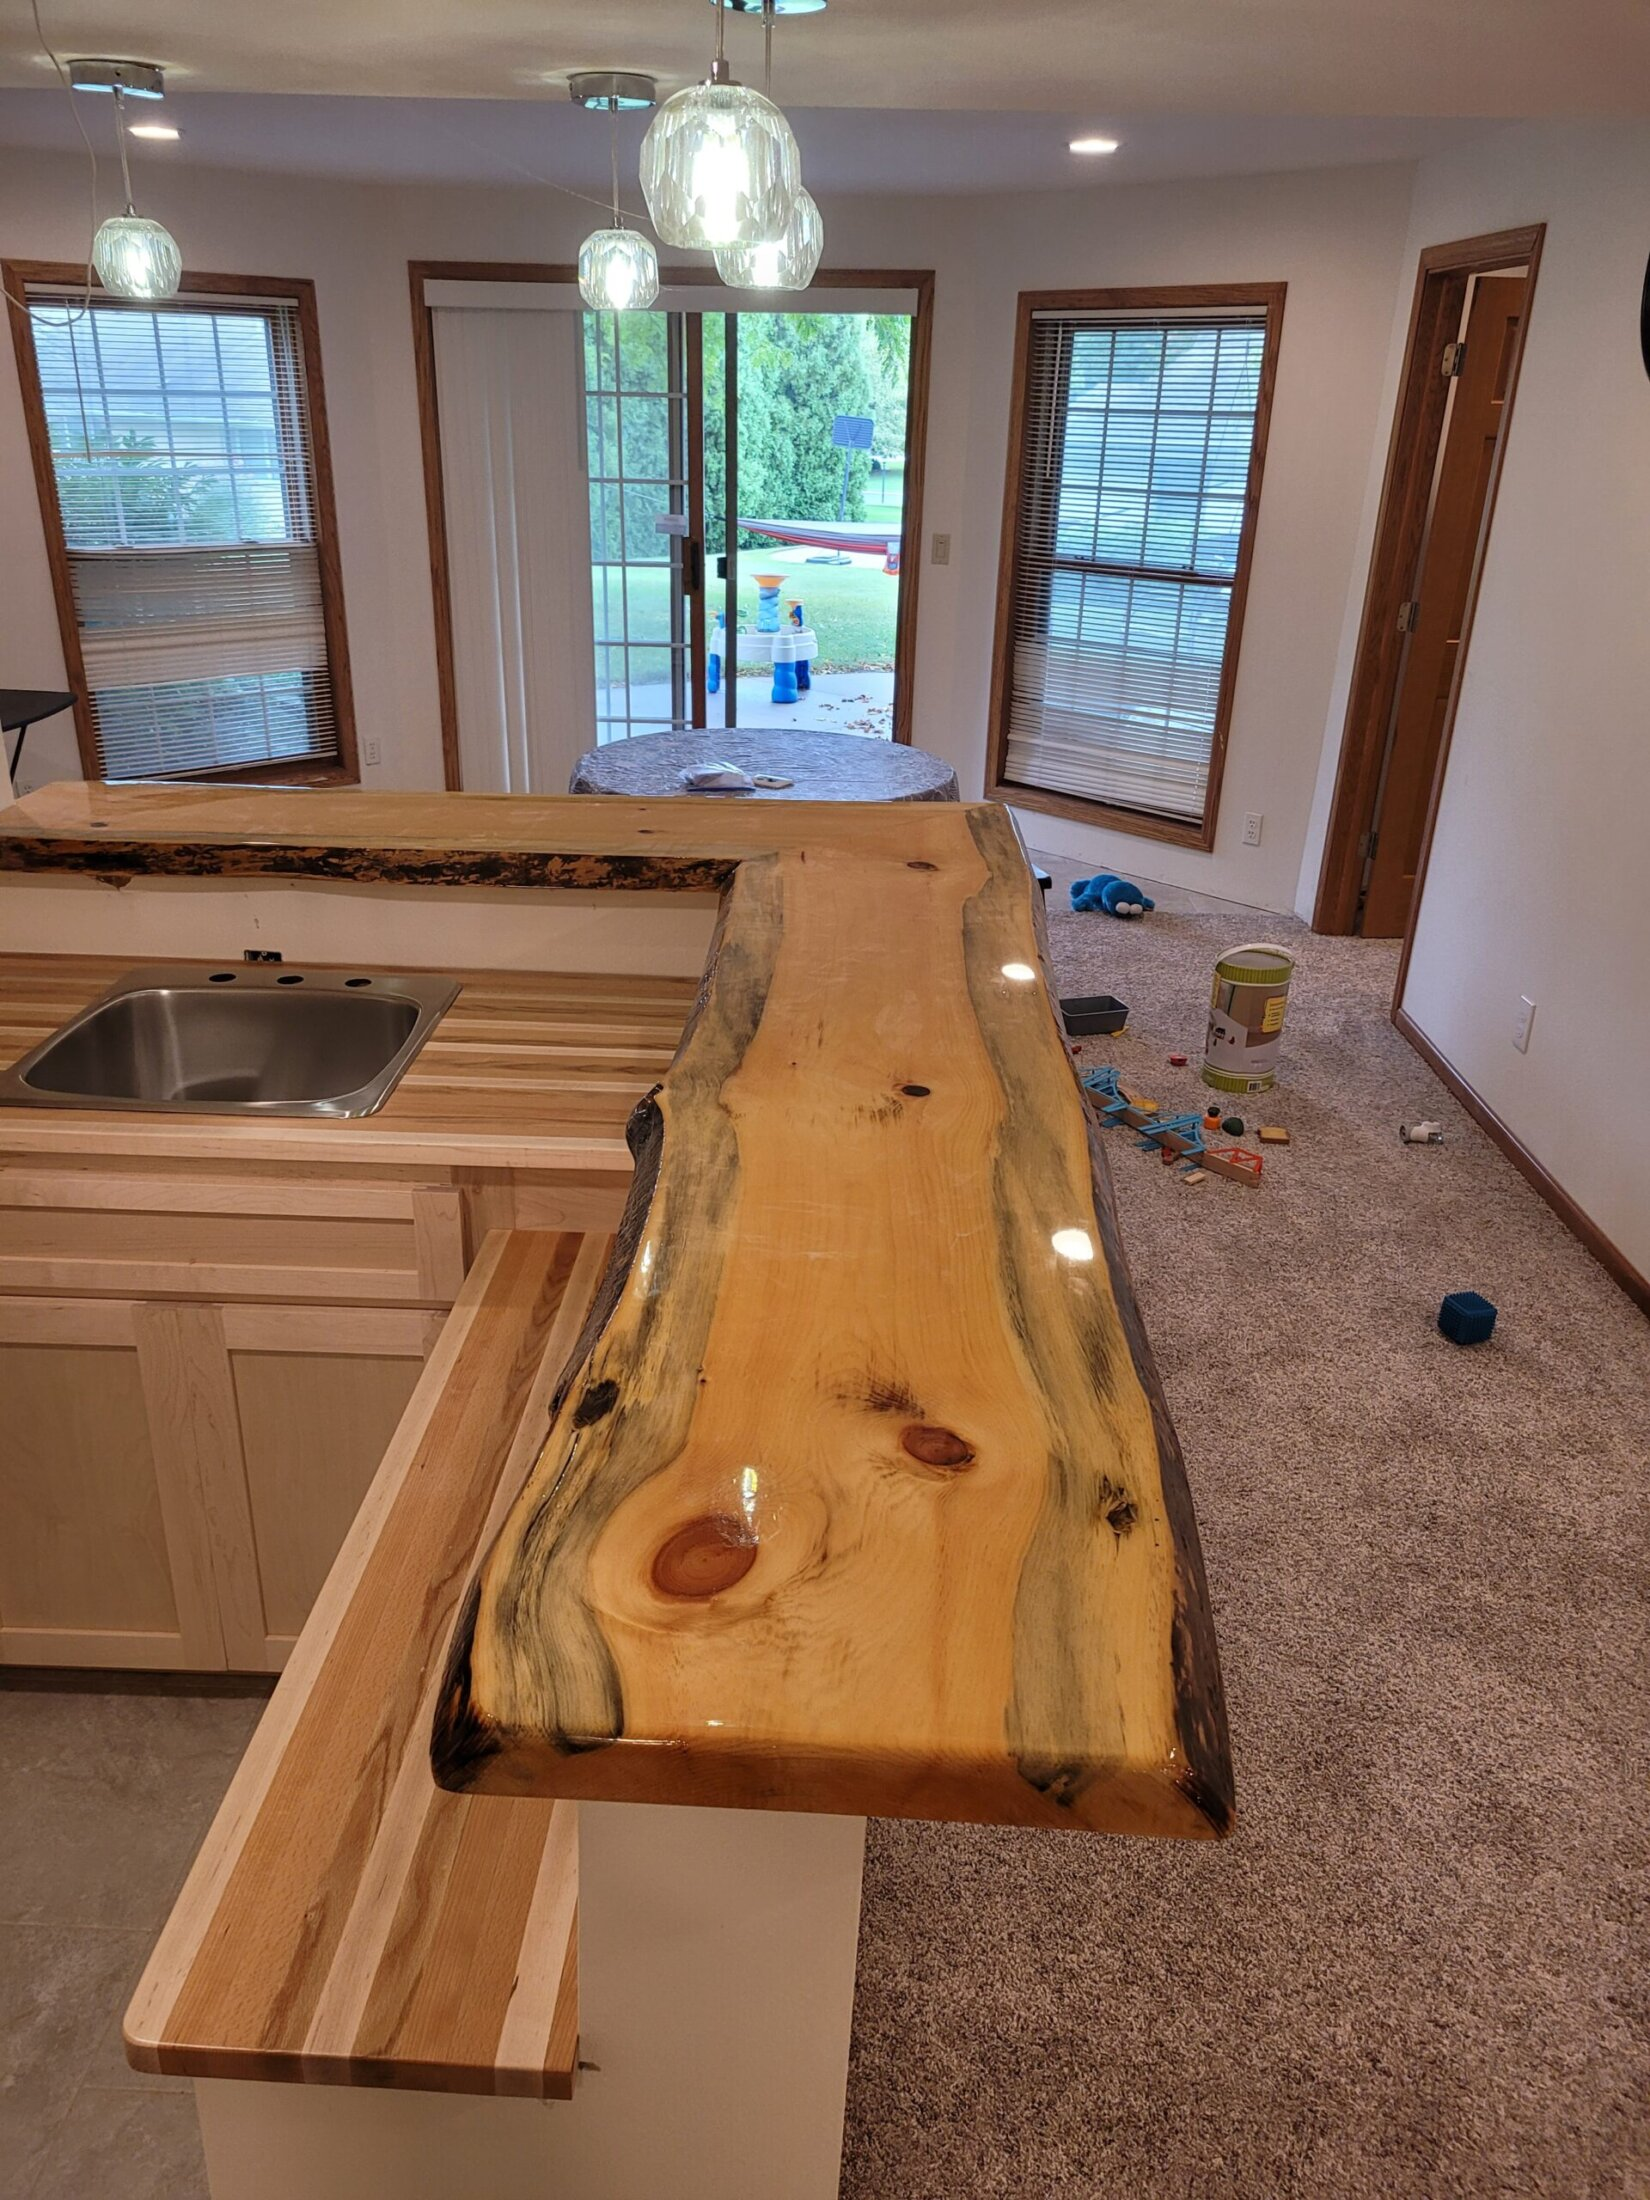 Live Edge Pine Counter Top with Custom made Butcher Block Counter Tops